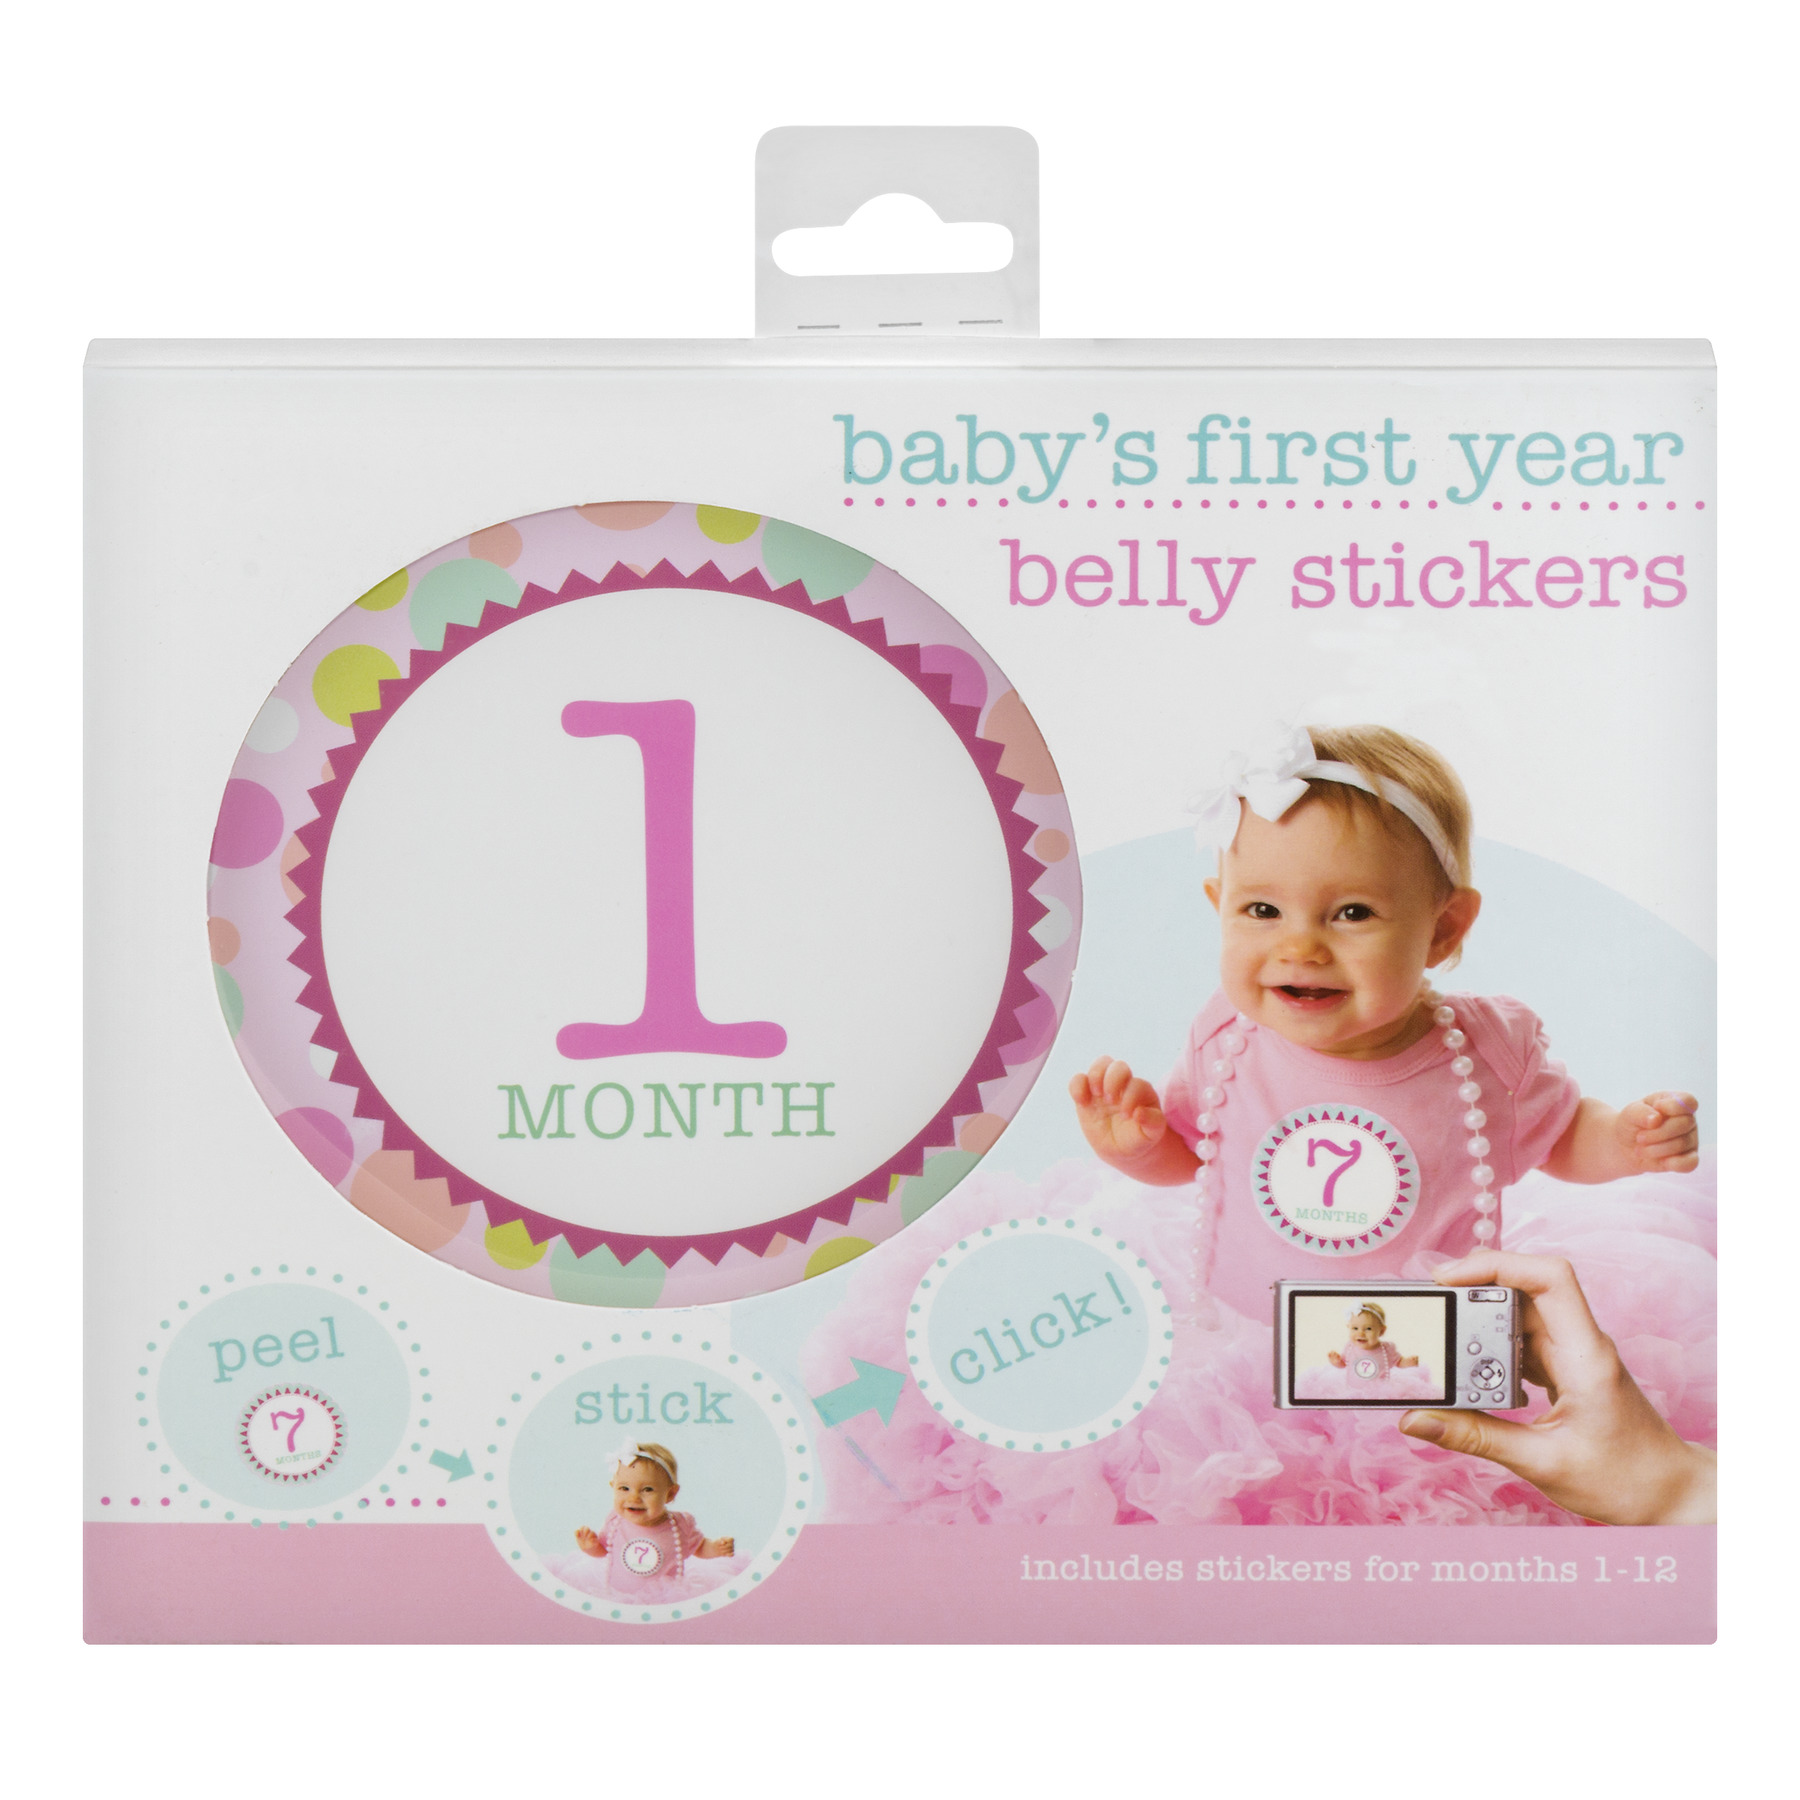 Stepping Stones <mark>Baby's</mark> First Year Belly Stickers - 12 CT12.0 CT